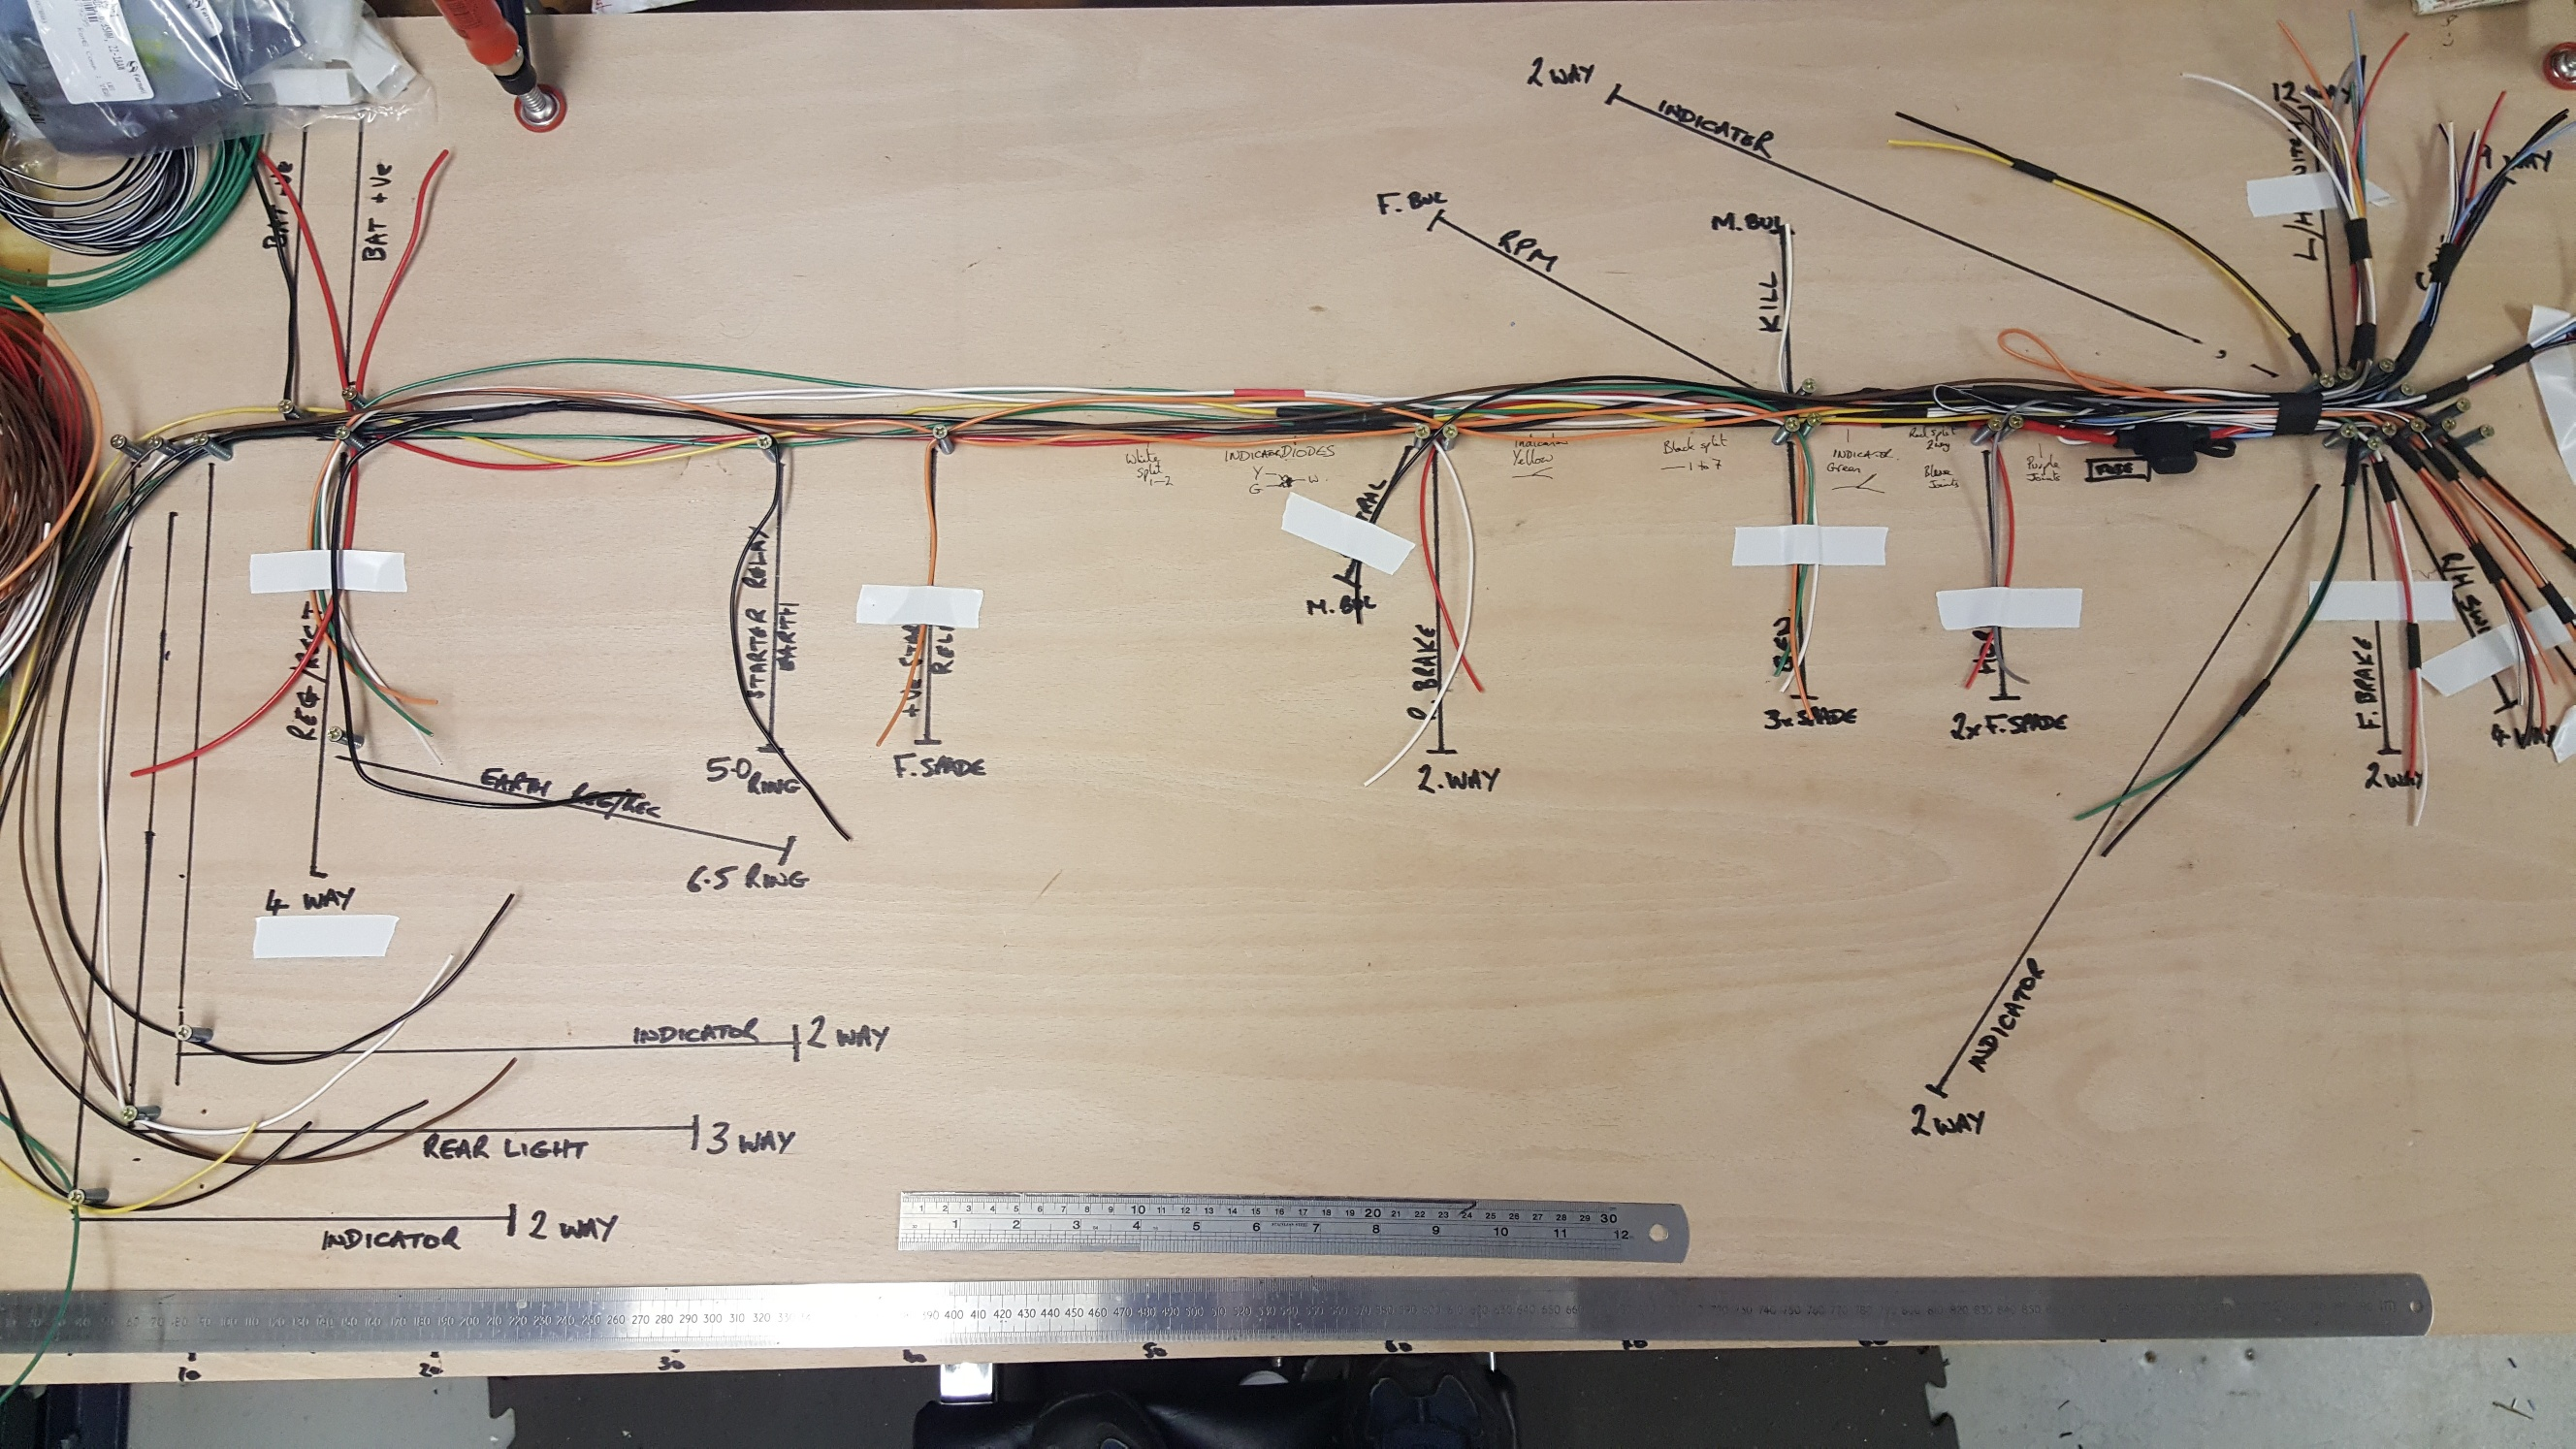 20170720_103947_resized  Way Wiring Diagram Options on 3 way door, 3 way wiring circuit, 3 way frame, 3 way parts, 3 way switches diagram, 3 way dimensions, 3 way plug wiring, 3 way lighting diagram, 3 way generator, 3 way outlet wiring, 3 way troubleshooting, 3 way starter, 3 way switching diagram, 3 way switch connections, 3 way sensor diagram, 3 way switch diagram, 3 way installation, 3 way fuse, 3 way water pump, 3 way introduction,